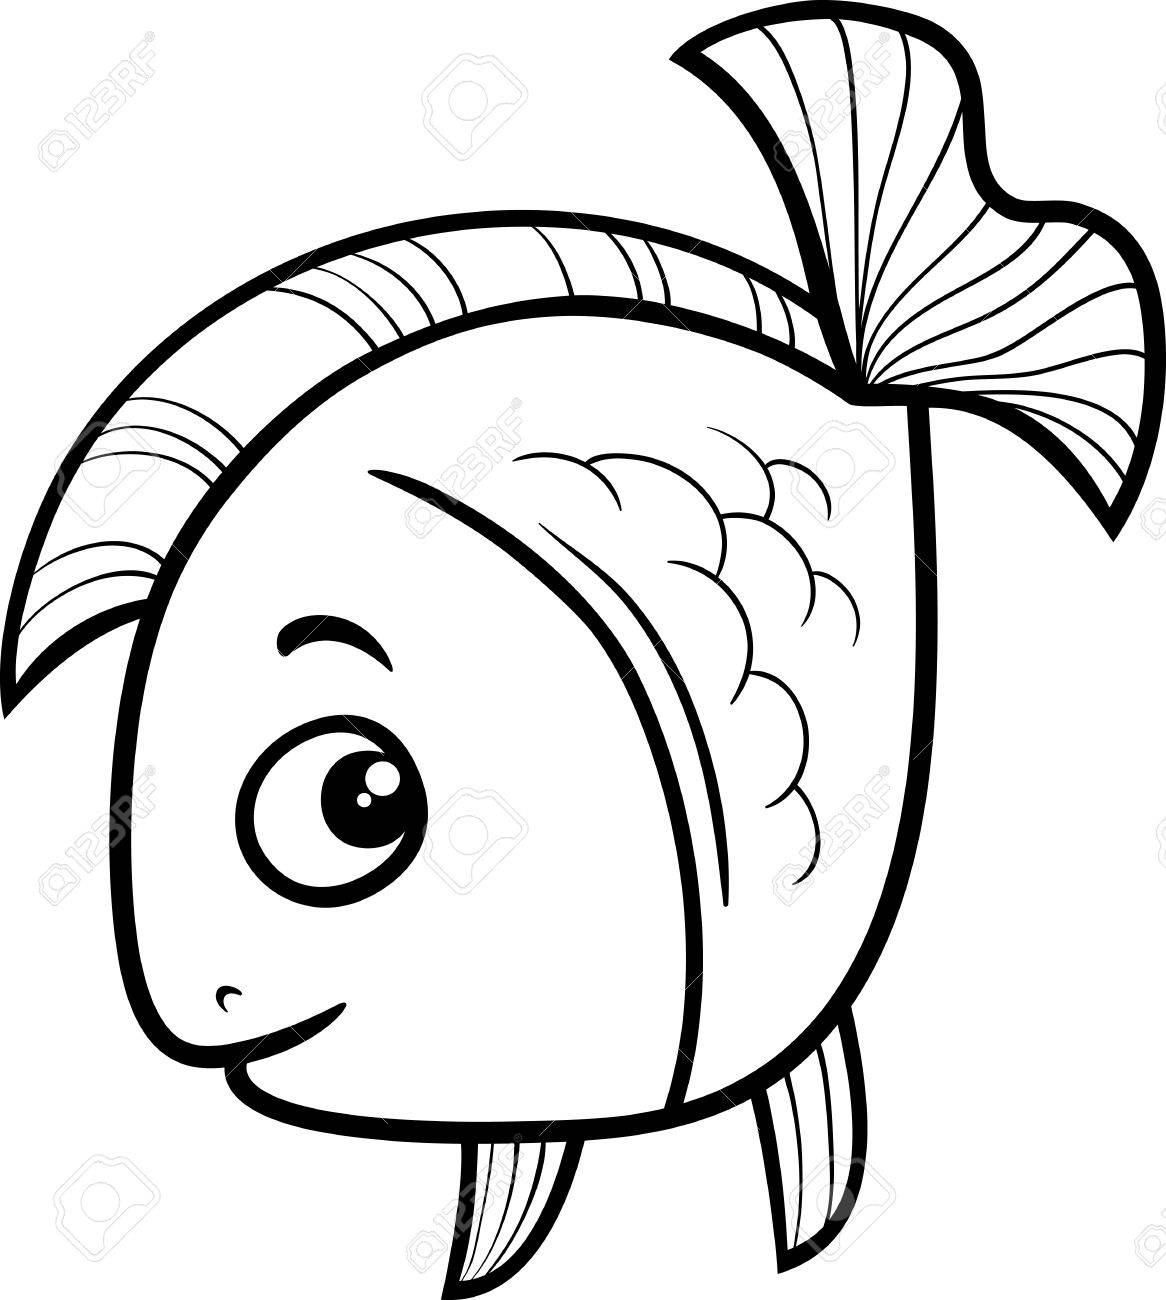 Black And White Cartoon Illustration Of Golden Fish Sea Life Royalty Free Cliparts Vectors And Stock Illustration Image 43134802